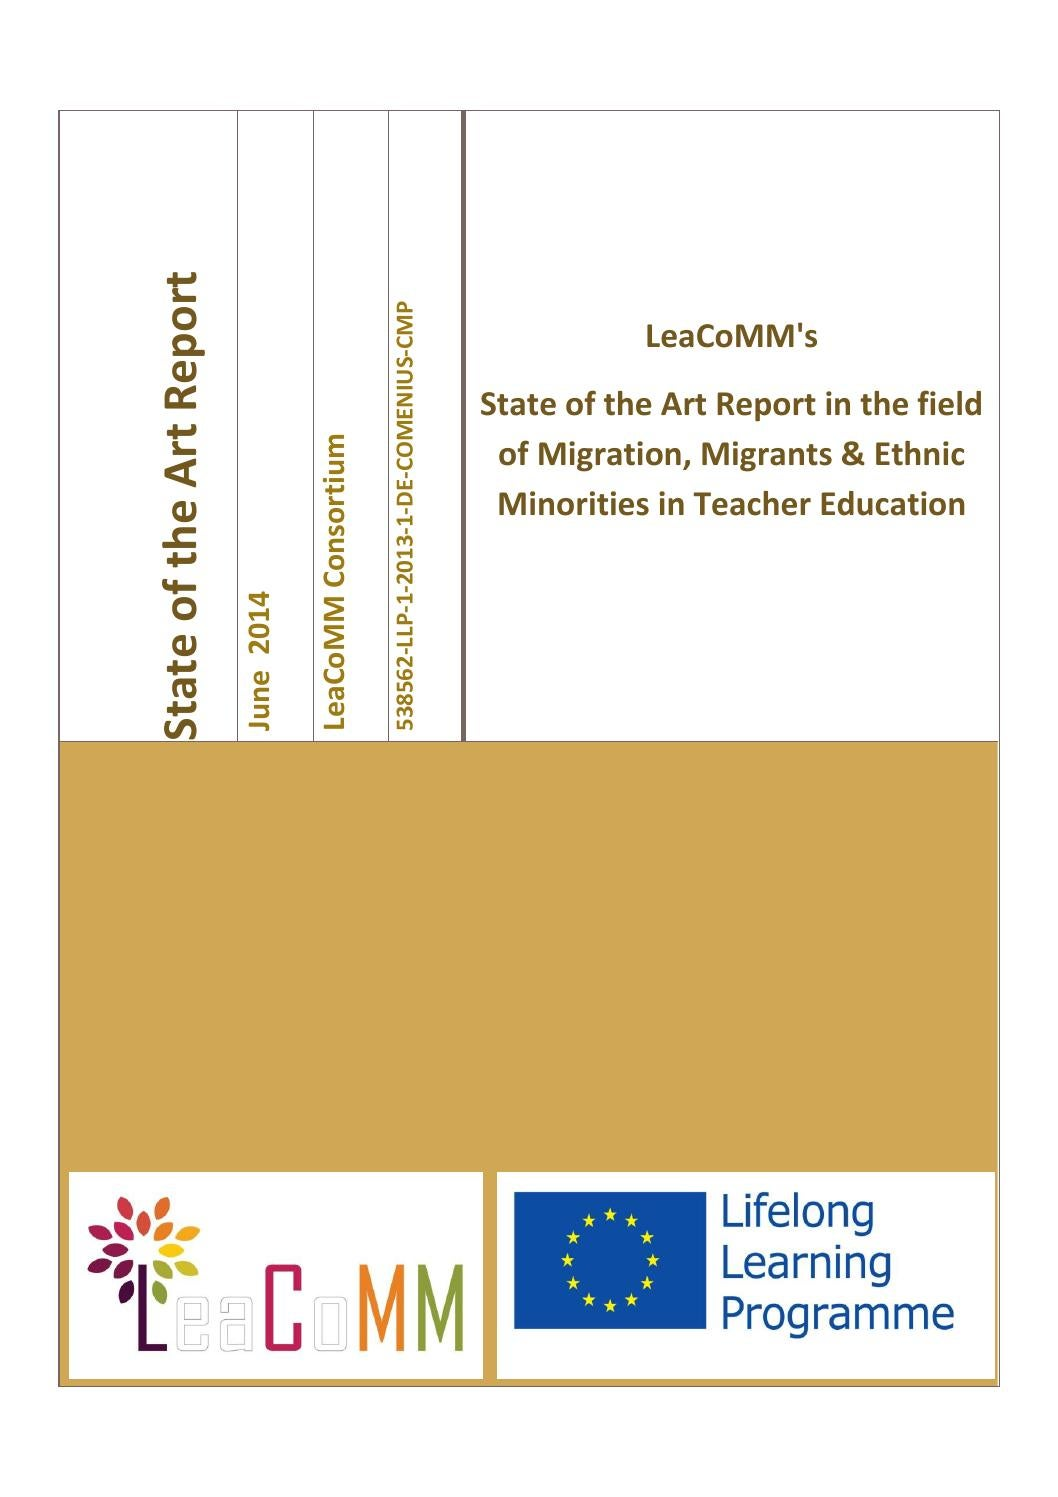 LeaCoMM's  State of the Art Report in the field of Migration, Migrants & Ethnic Minorities in Teache